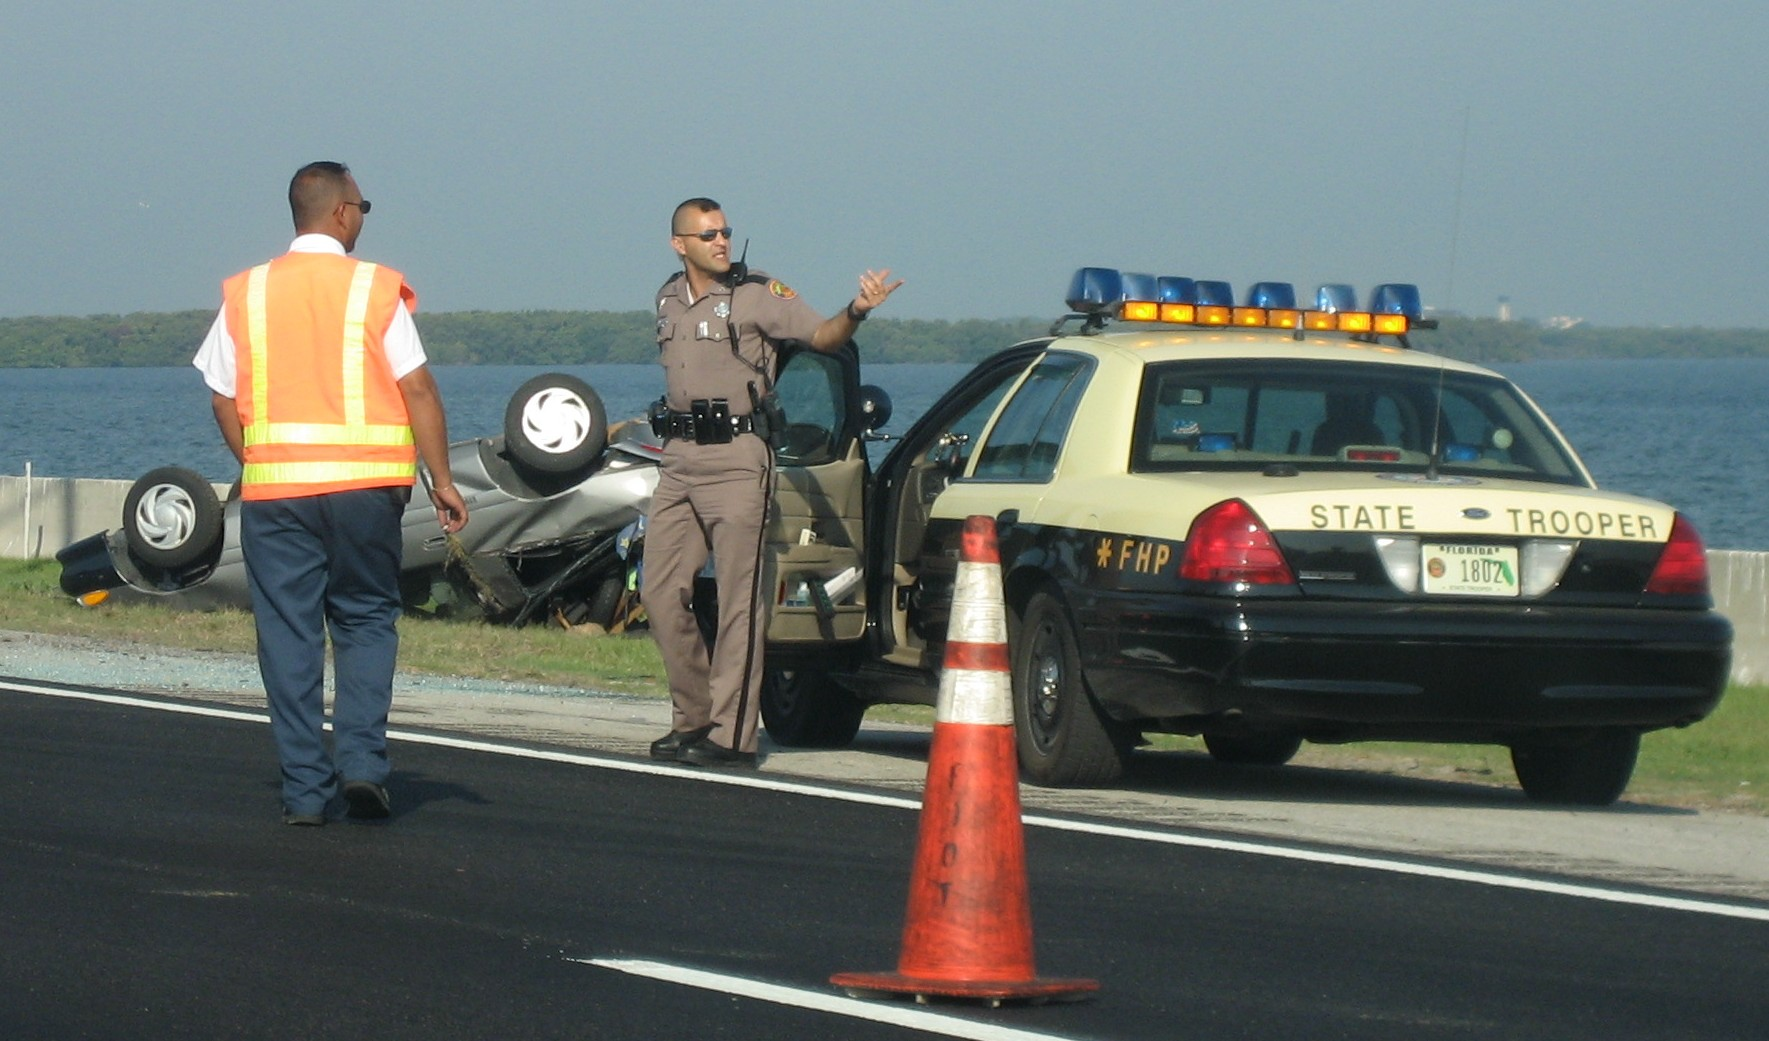 Florida Highway Patrol dealing with trooper shortage